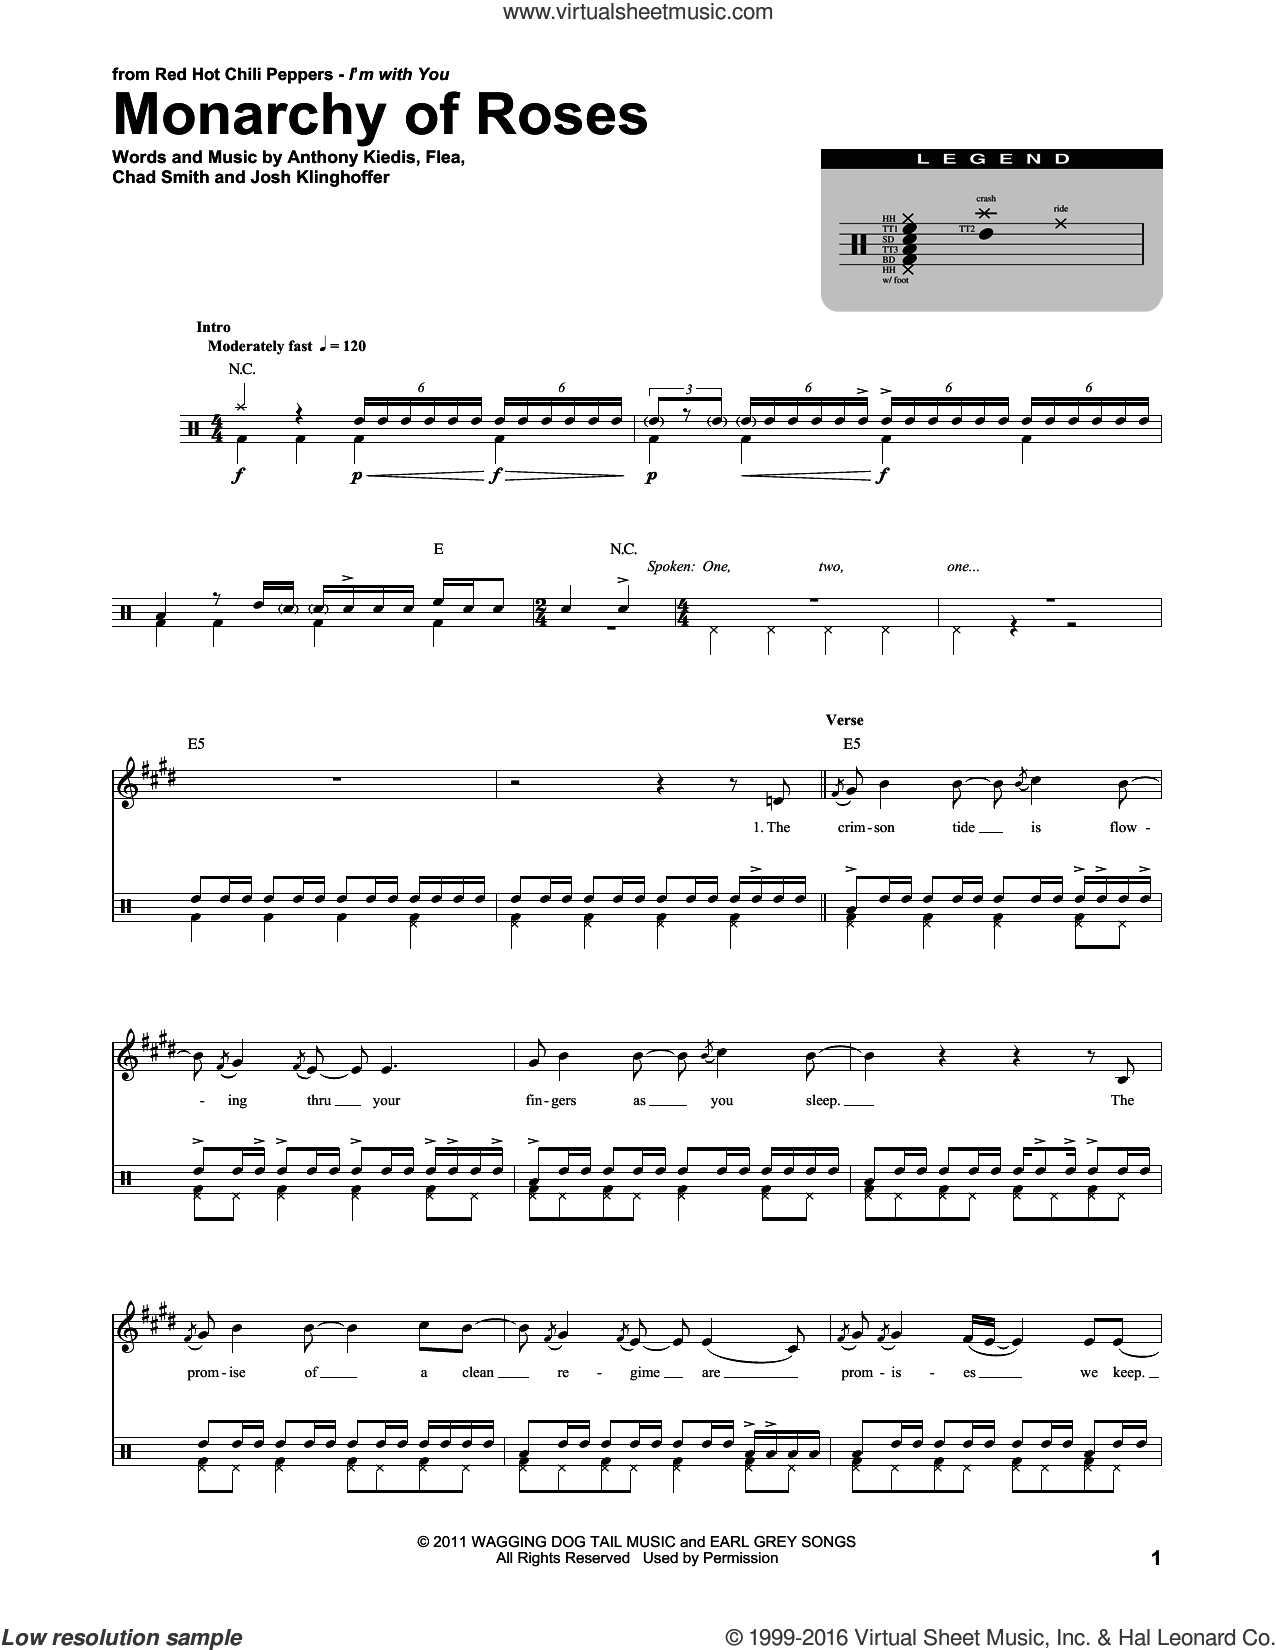 Monarchy Of Roses sheet music for drums by Josh Klinghoffer